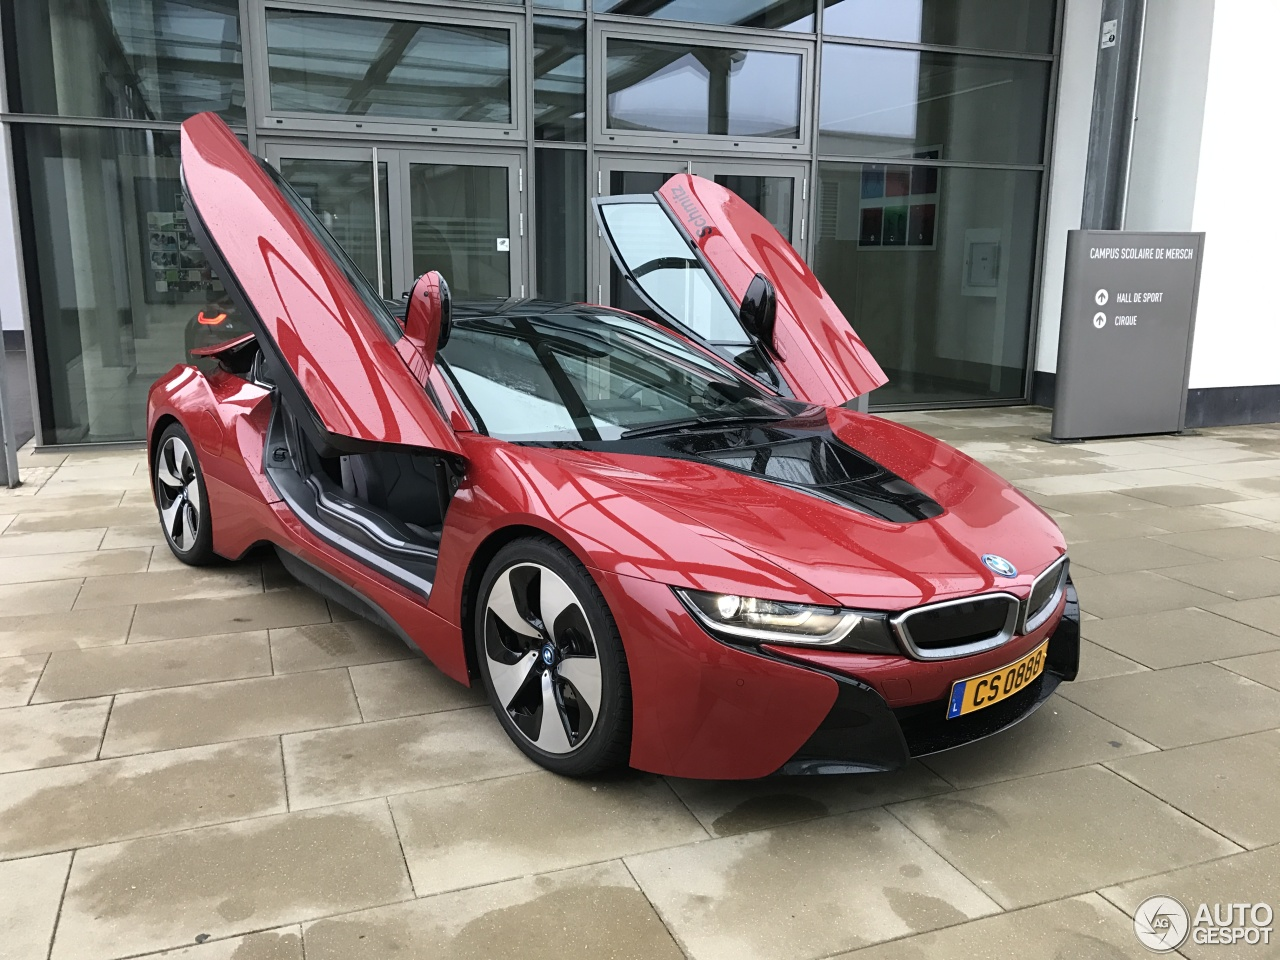 bmw i8 protonic red edition 26 december 2016 autogespot. Black Bedroom Furniture Sets. Home Design Ideas